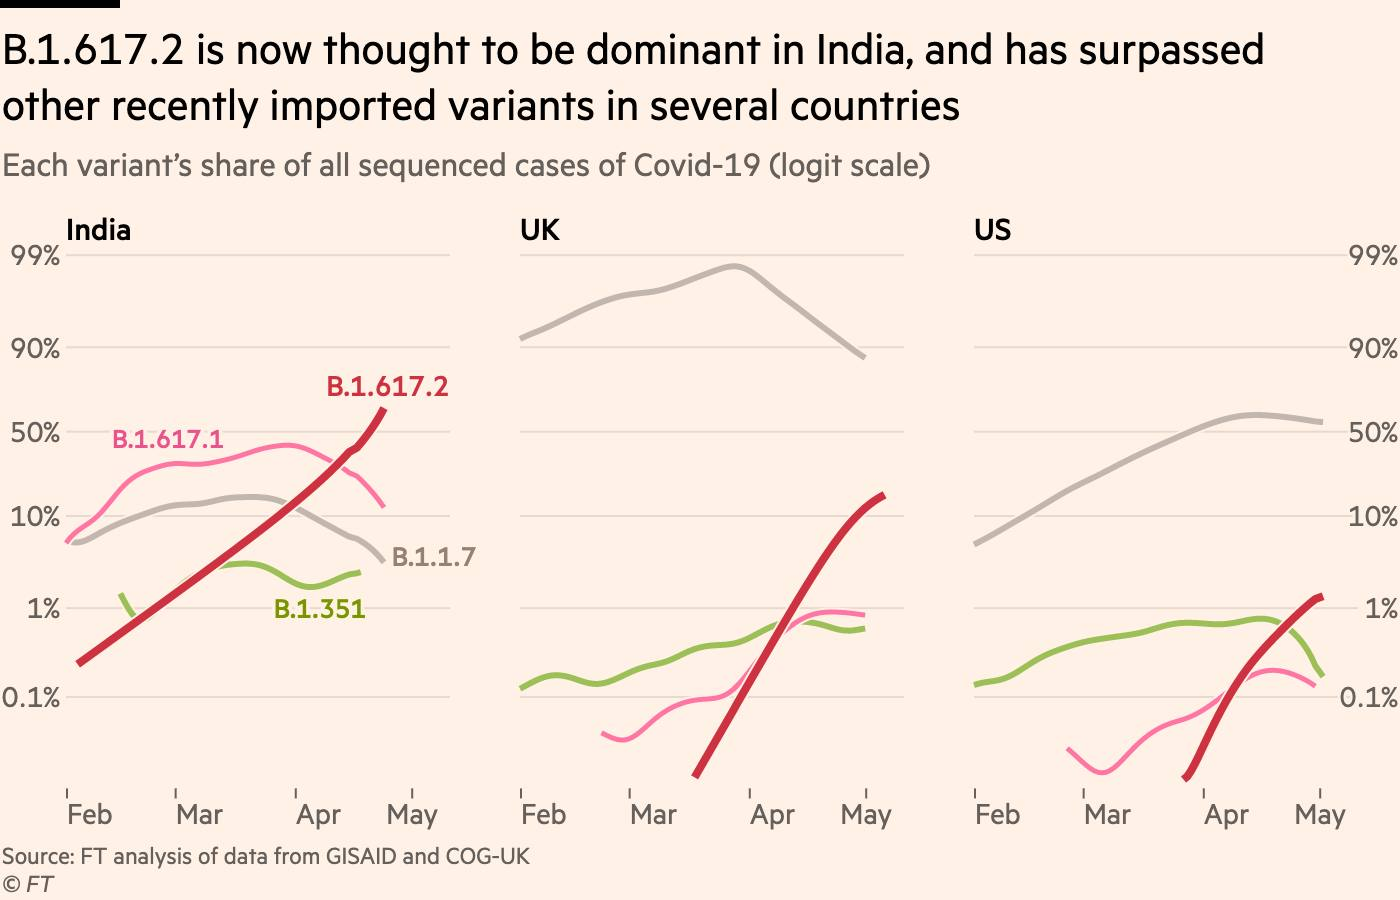 Chart showing that B.1.617.2 is now thought to be dominant in India, and has surpassed other recently imported variants in several countries